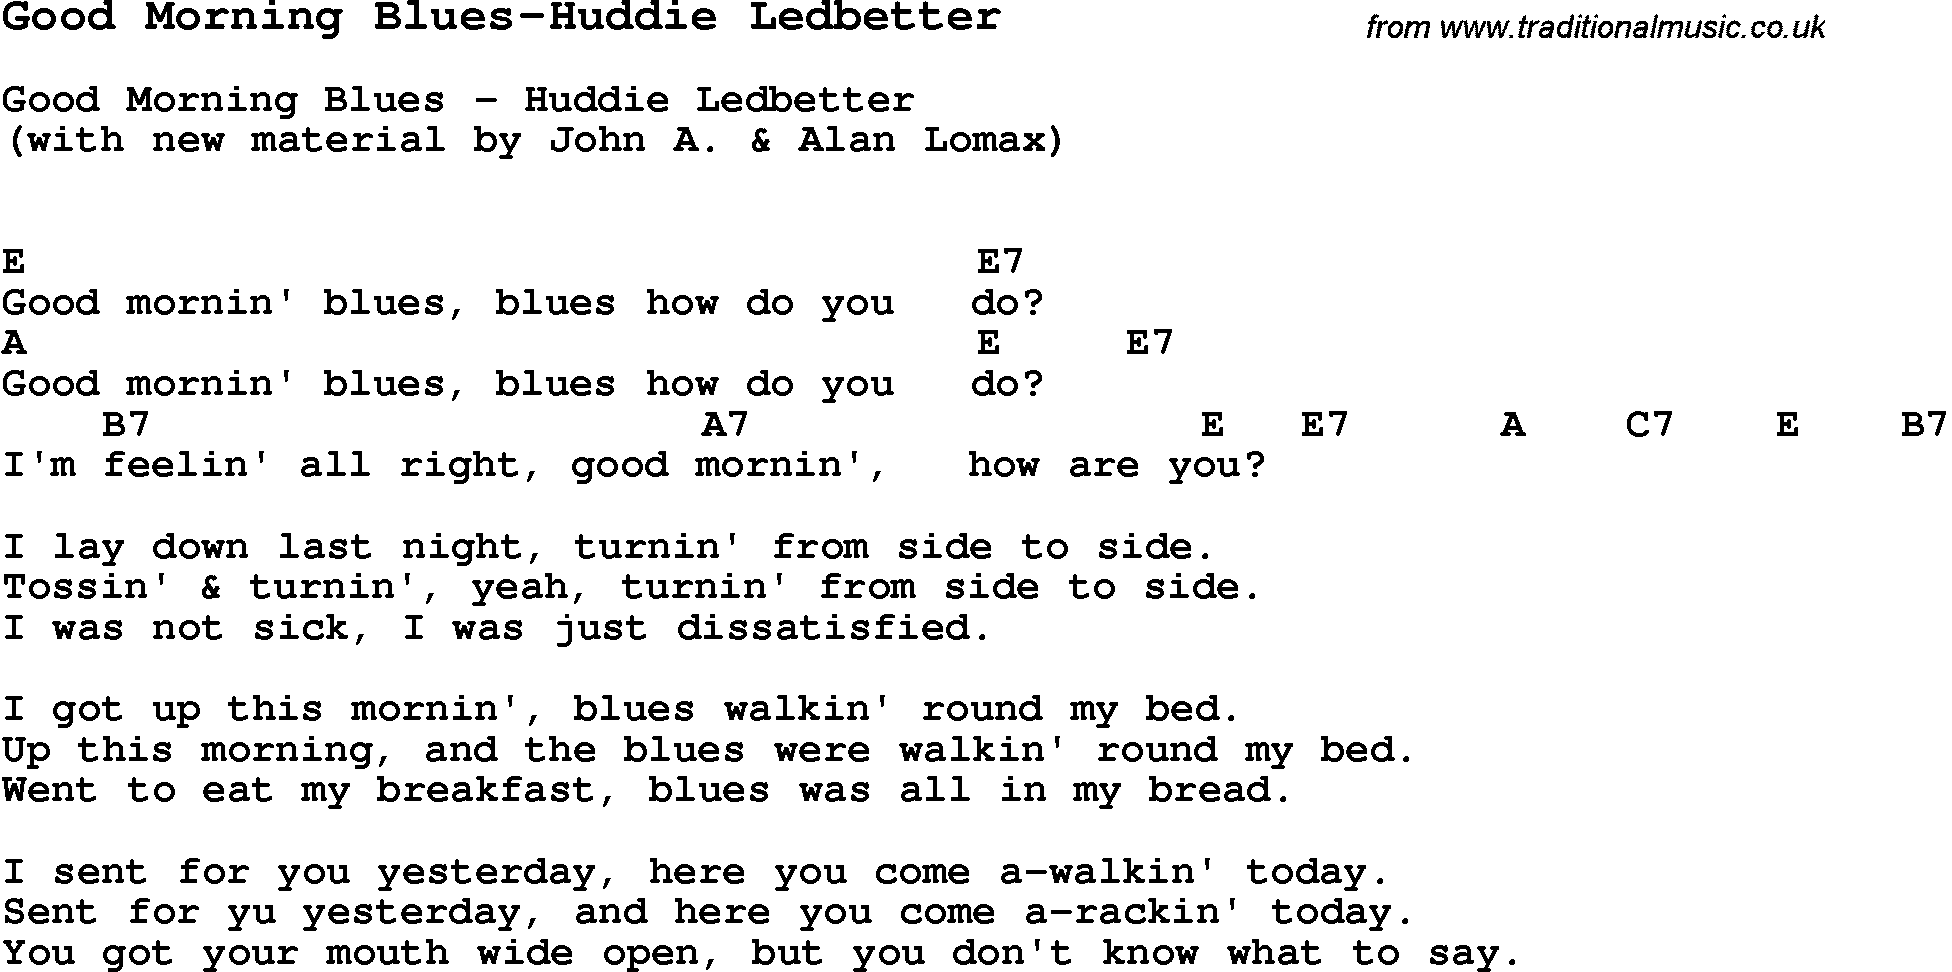 Blues Guitar Lesson For Good Morning Blues Huddie Ledbetter With